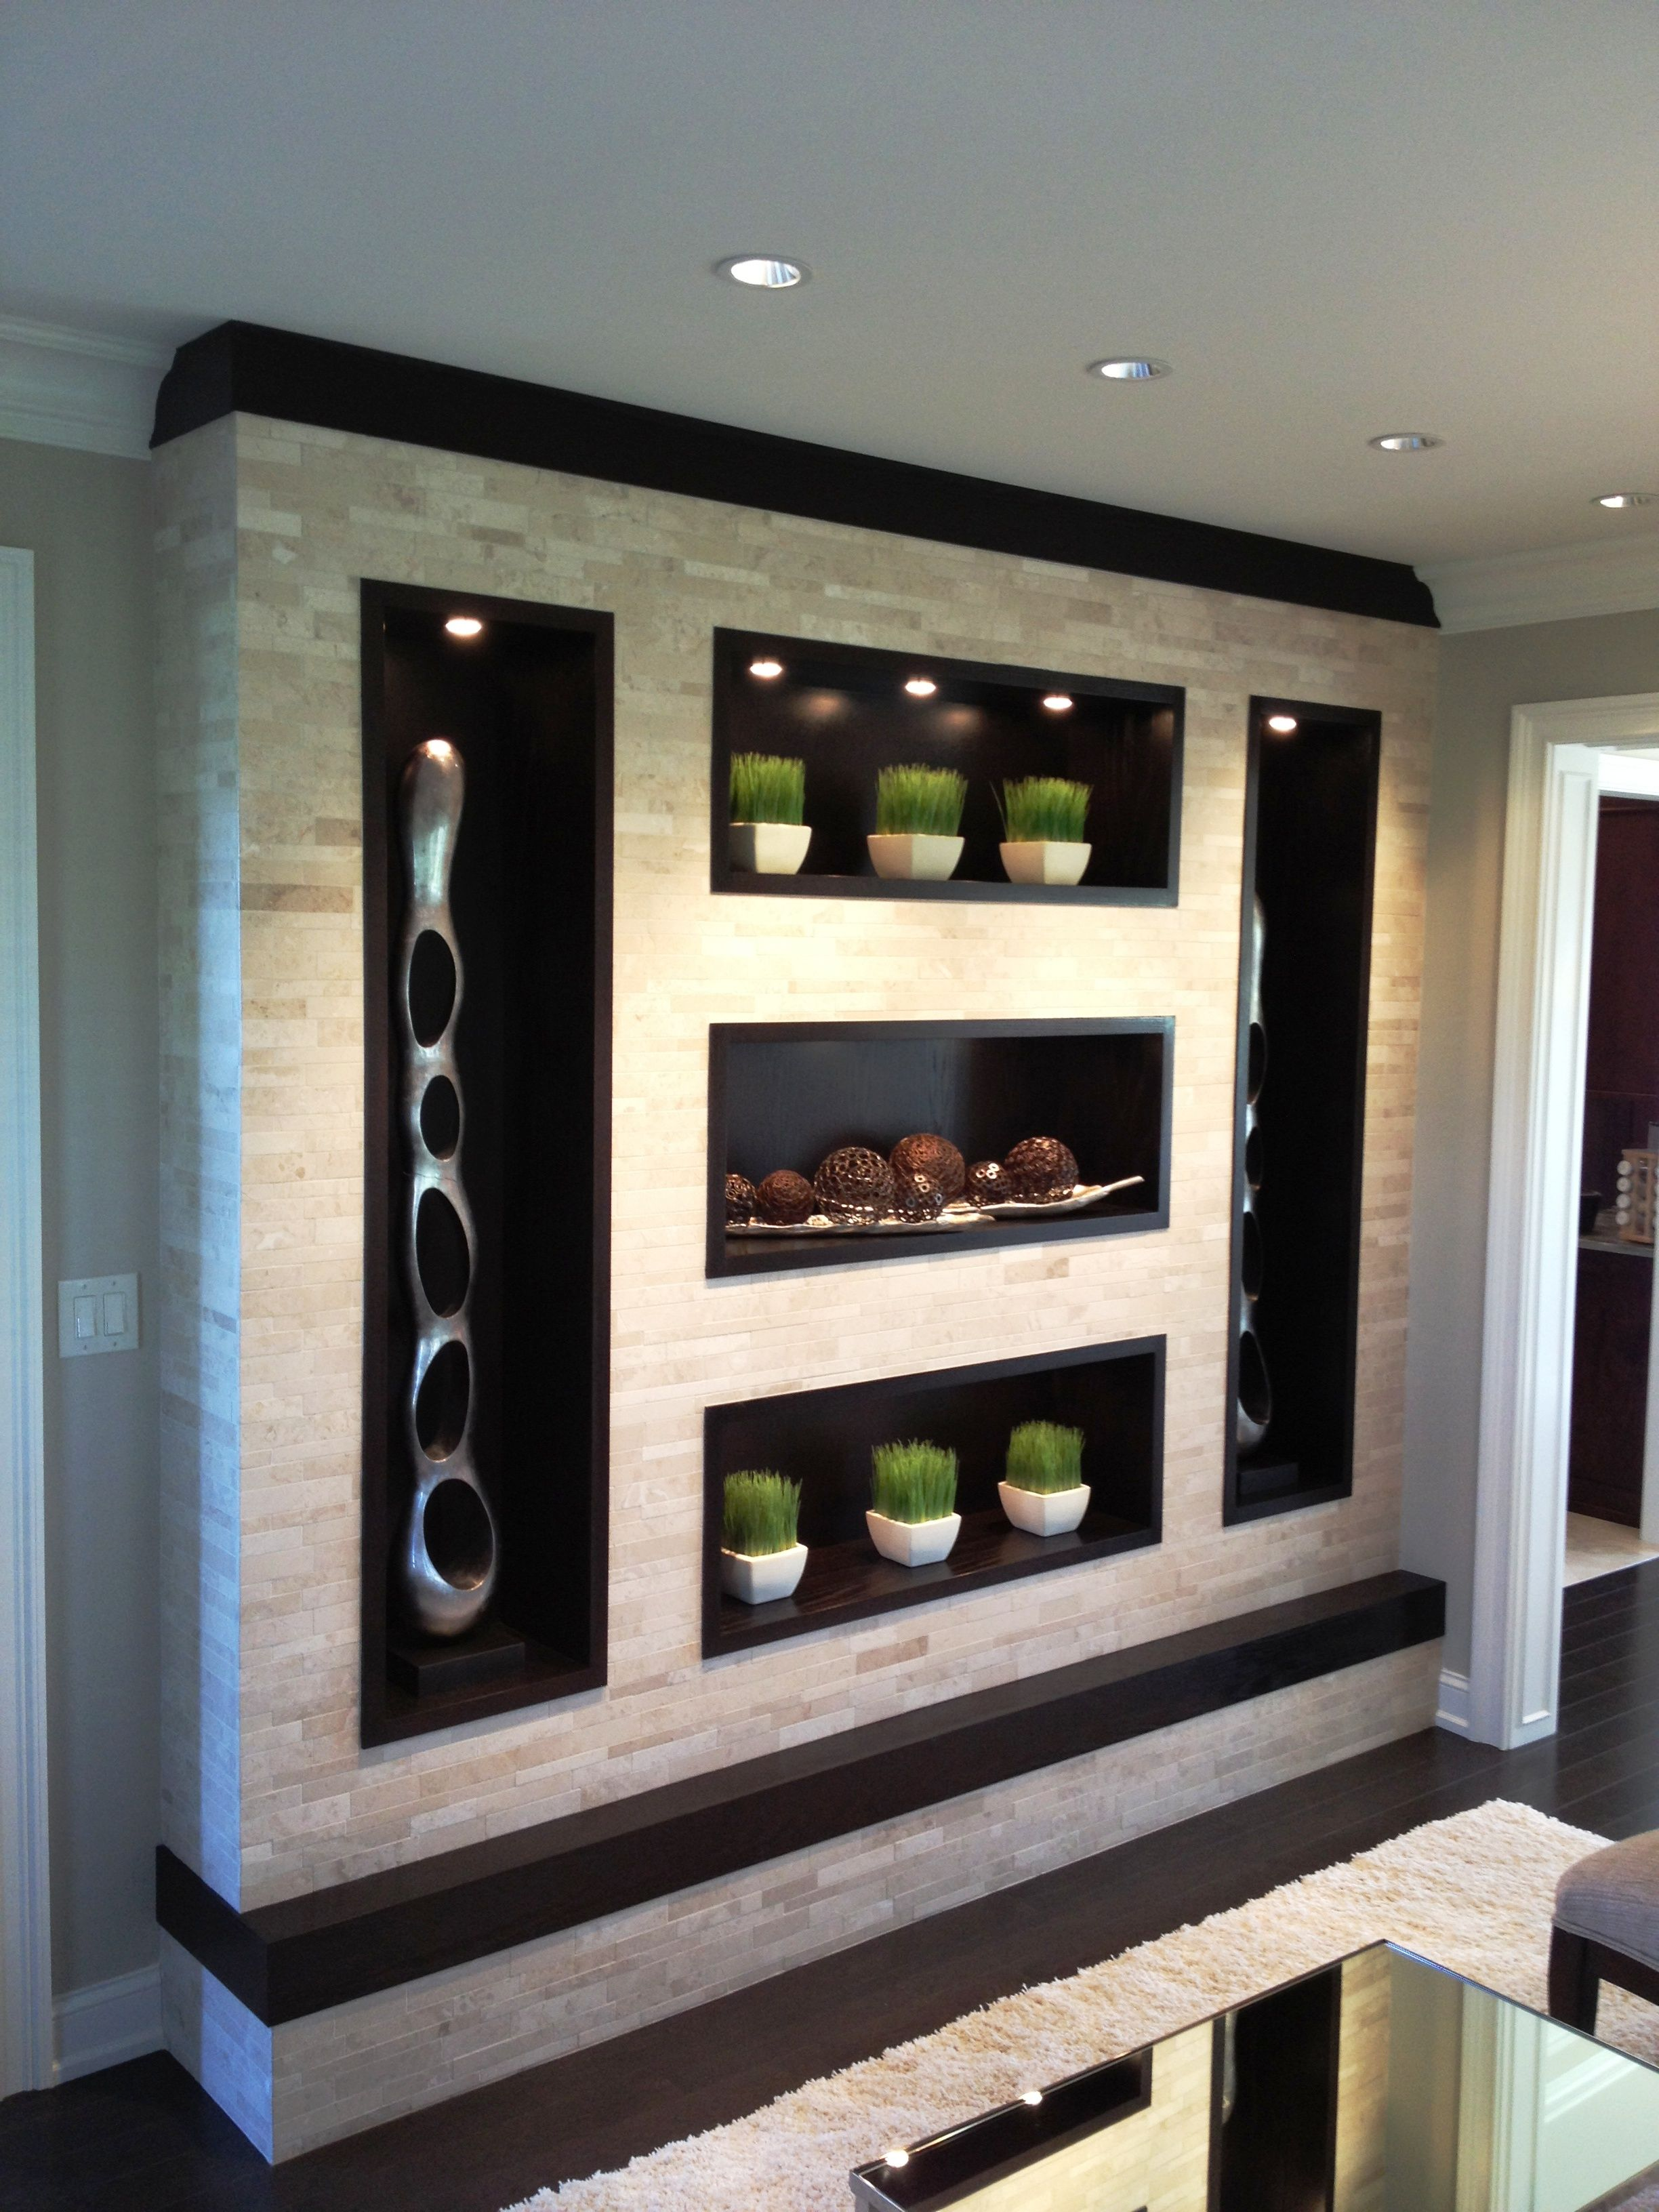 We created this wall unit by framing a blank corner of this